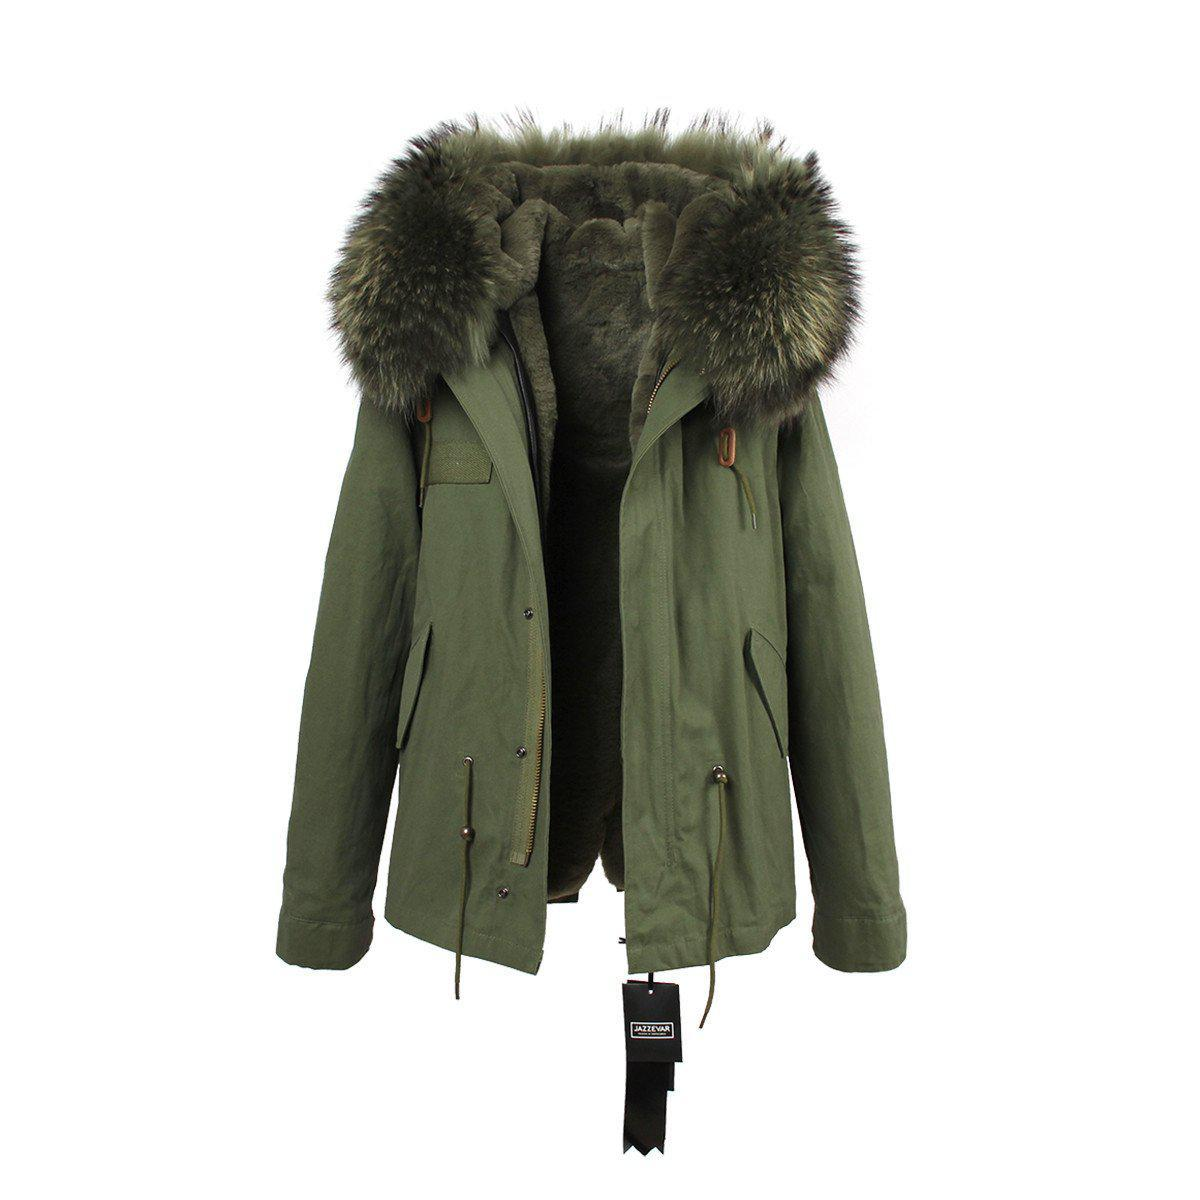 Large raccoon fur collar hooded coat parkas outwear 2 in 1 detachable lining winter jacket-Coats & Jackets-SheSimplyShops